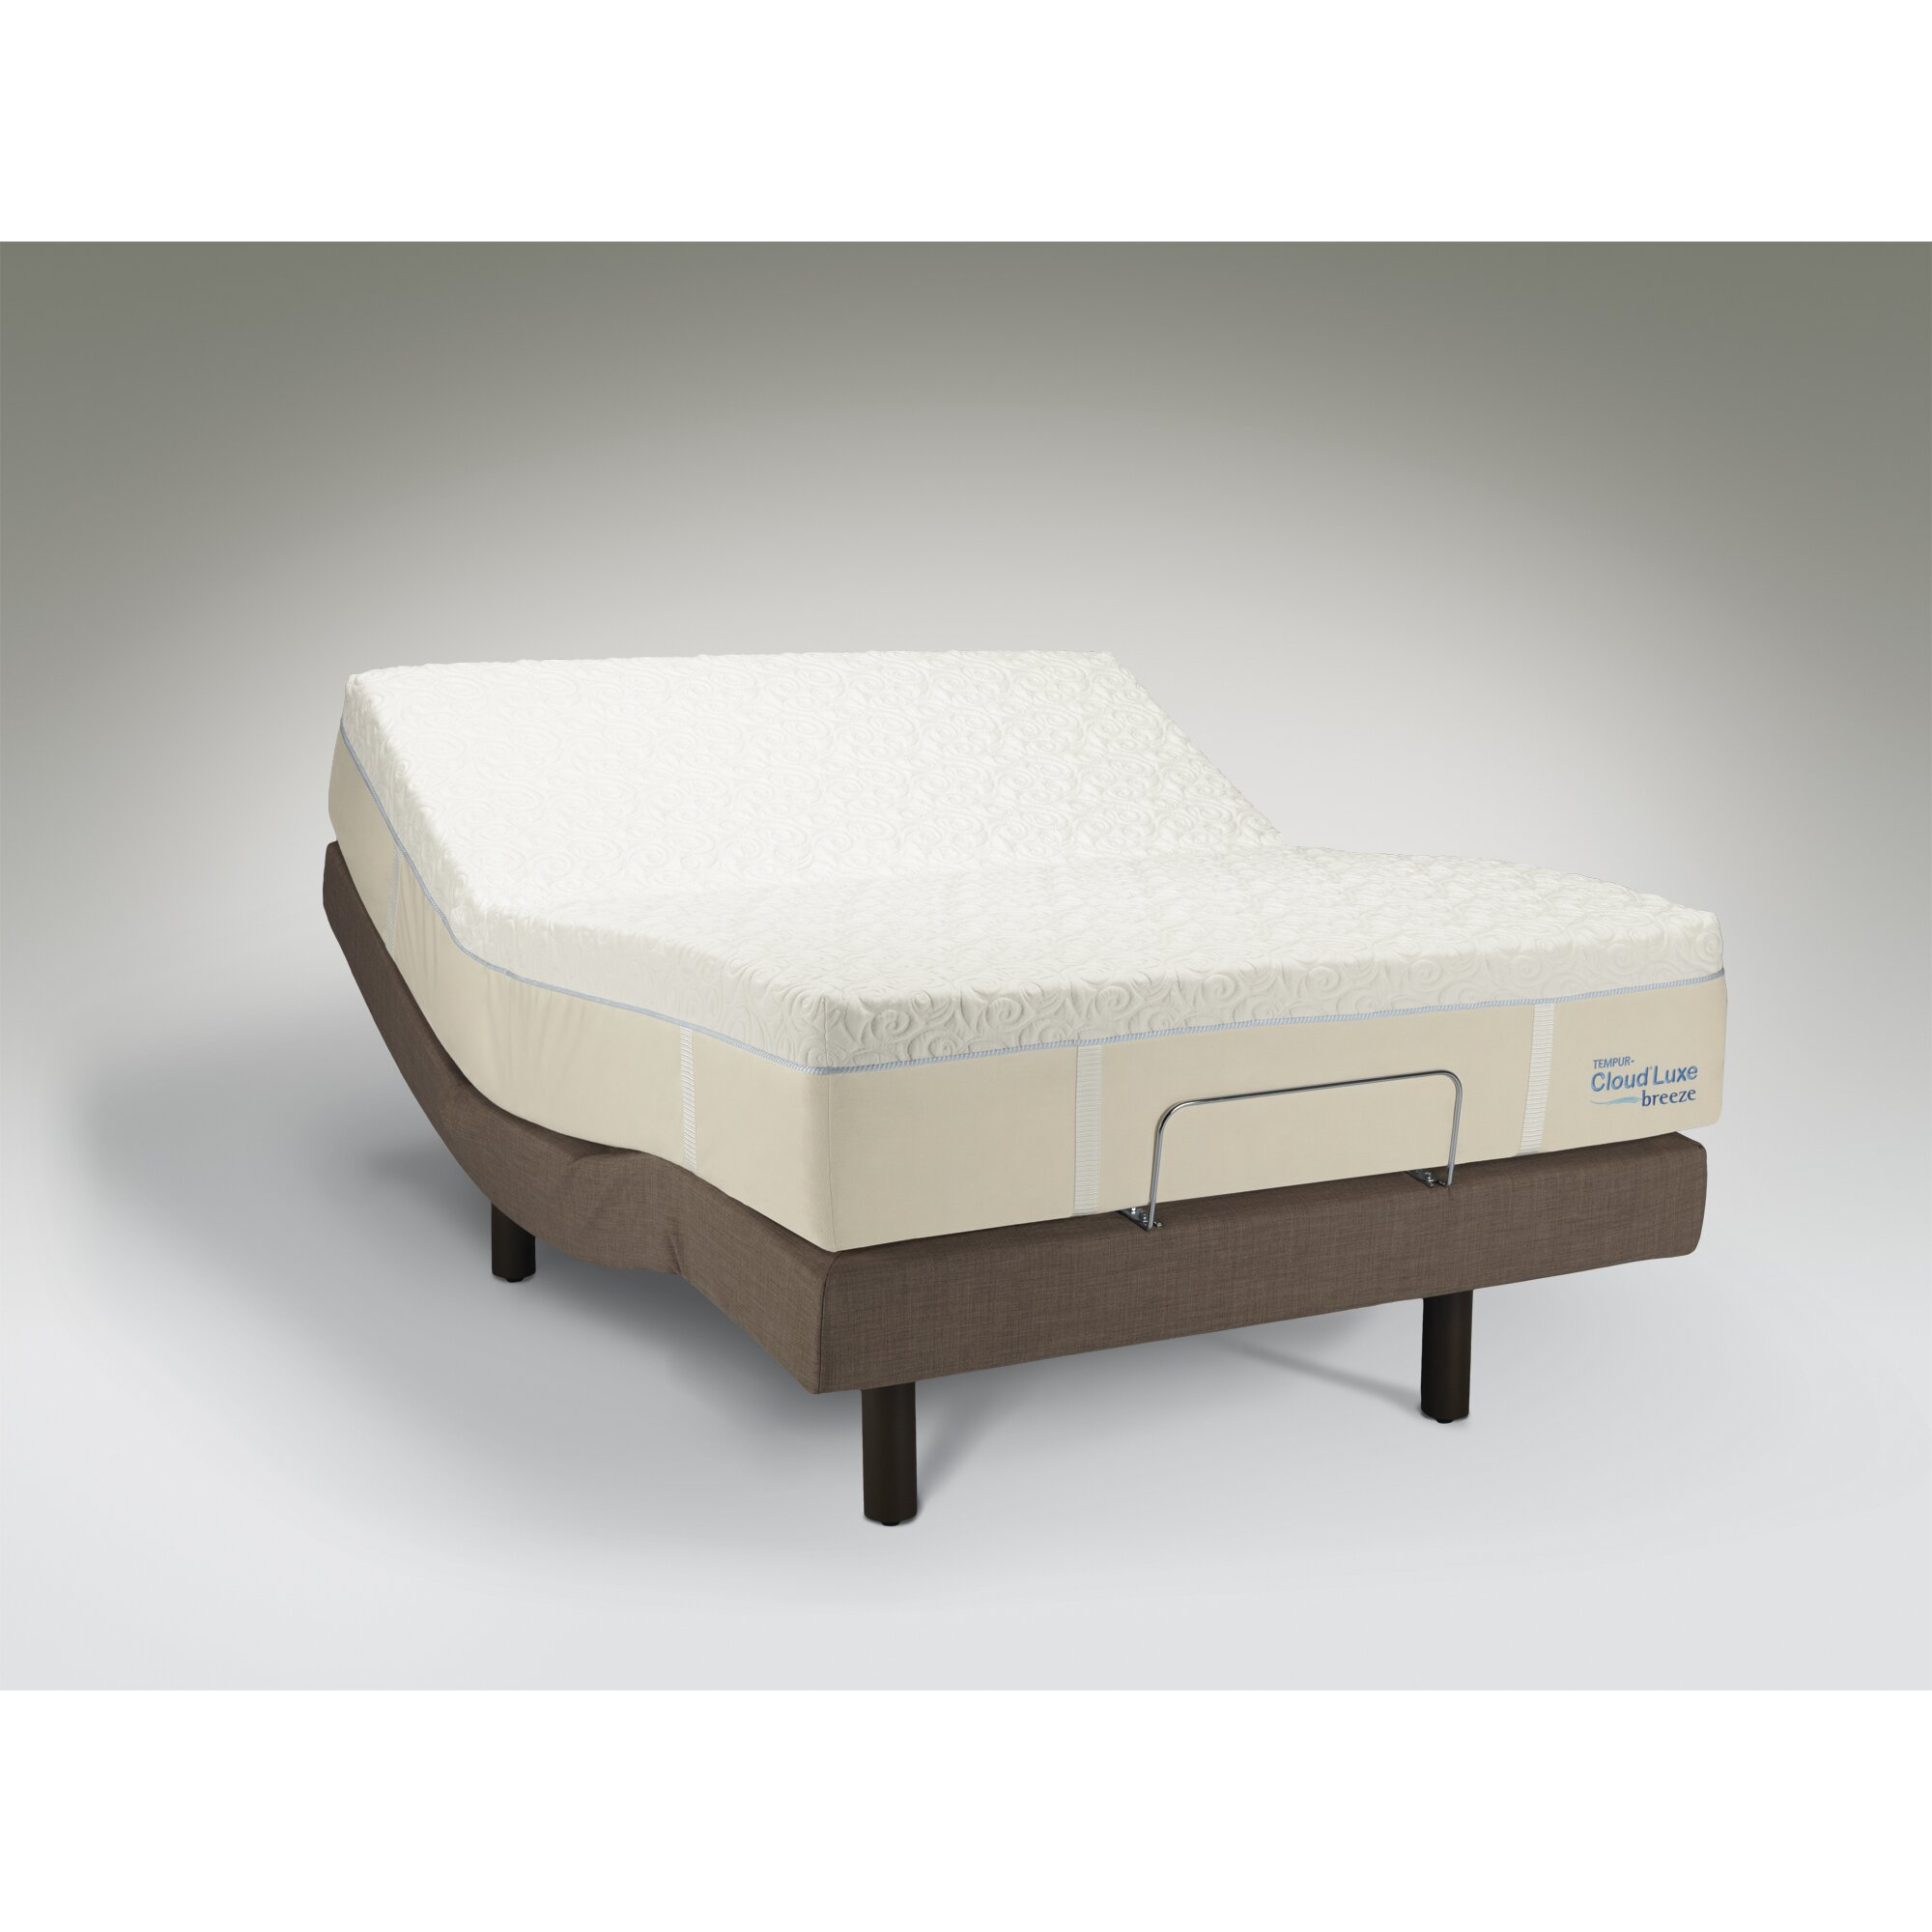 Choose from our selection of Tempur Pedic Mattresses, the best deals Ashley Furniture HomeStore has to decorate and furnish your home to perfection. We also have Free Shipping on many items!